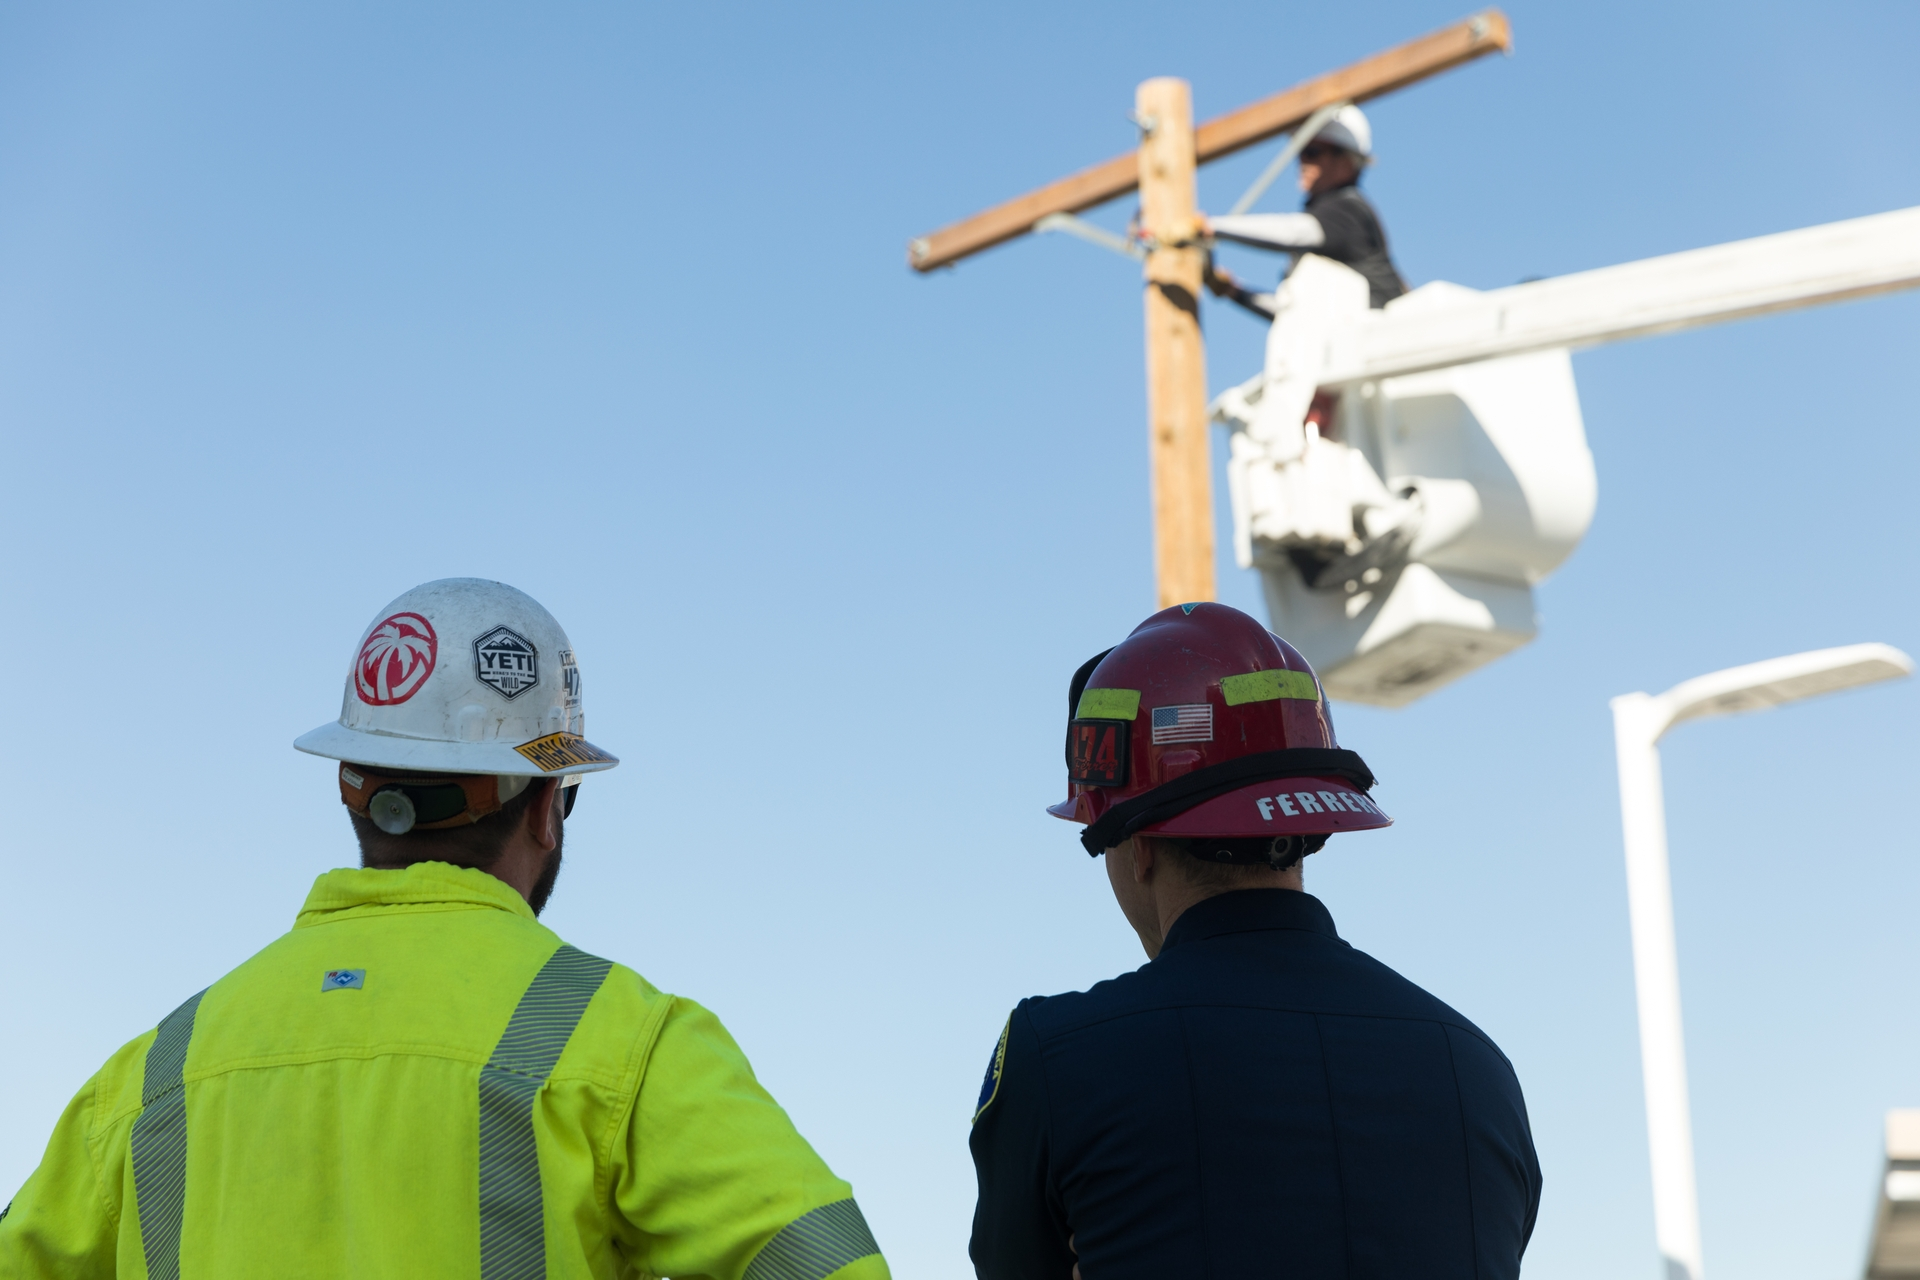 An SCE lineman and a Rancho Cucamonga firefighter look on as Lineman Richard Rocha reattaches a crossarm on a power pole.